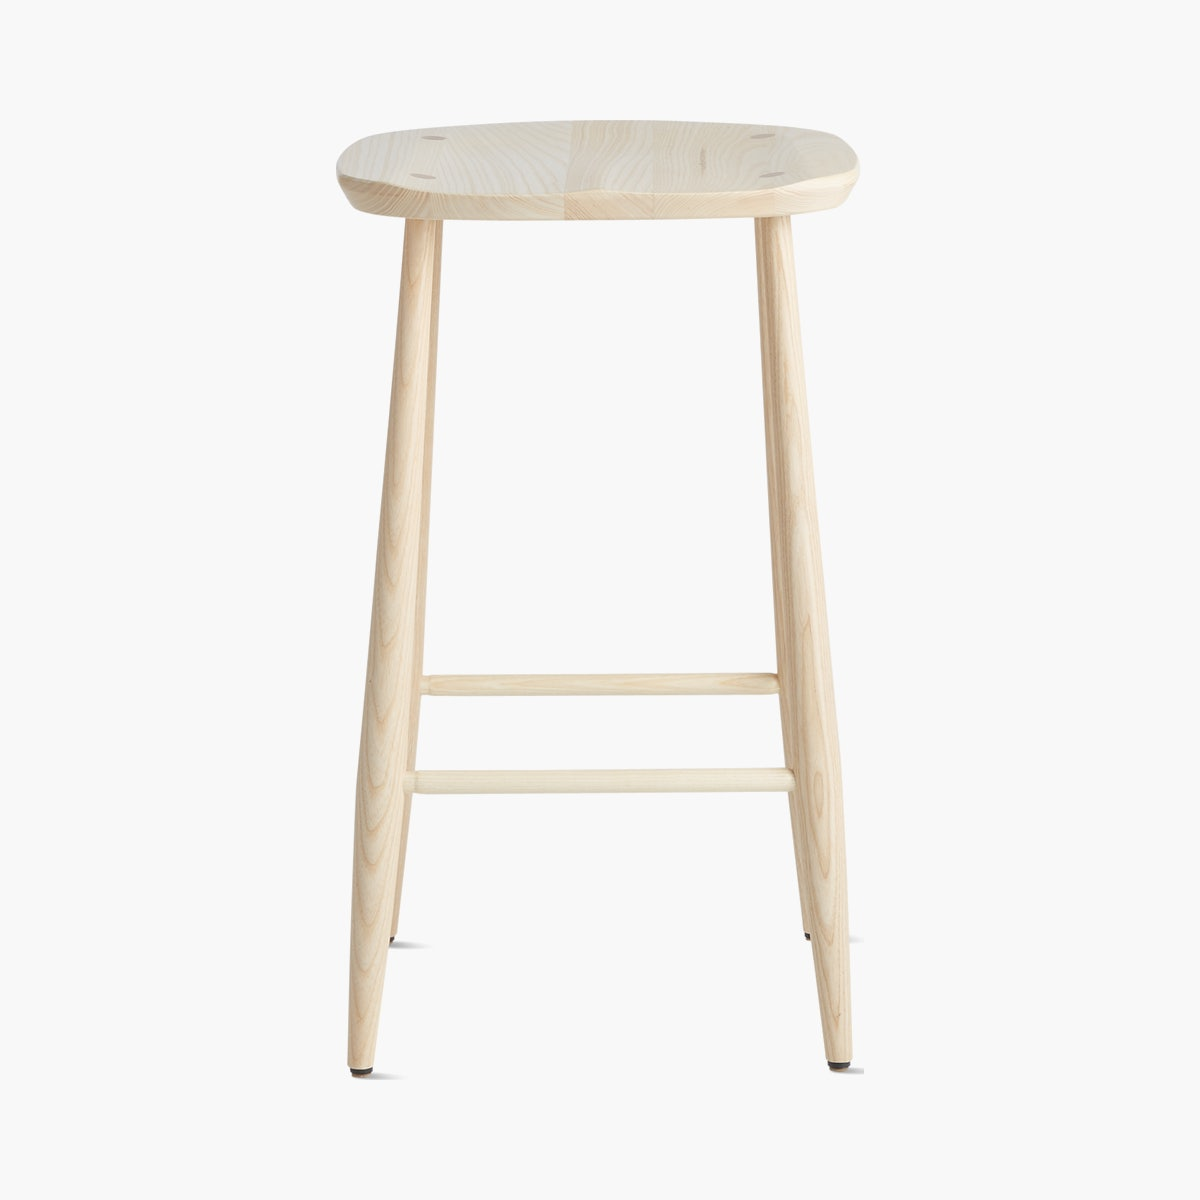 Originals Stool